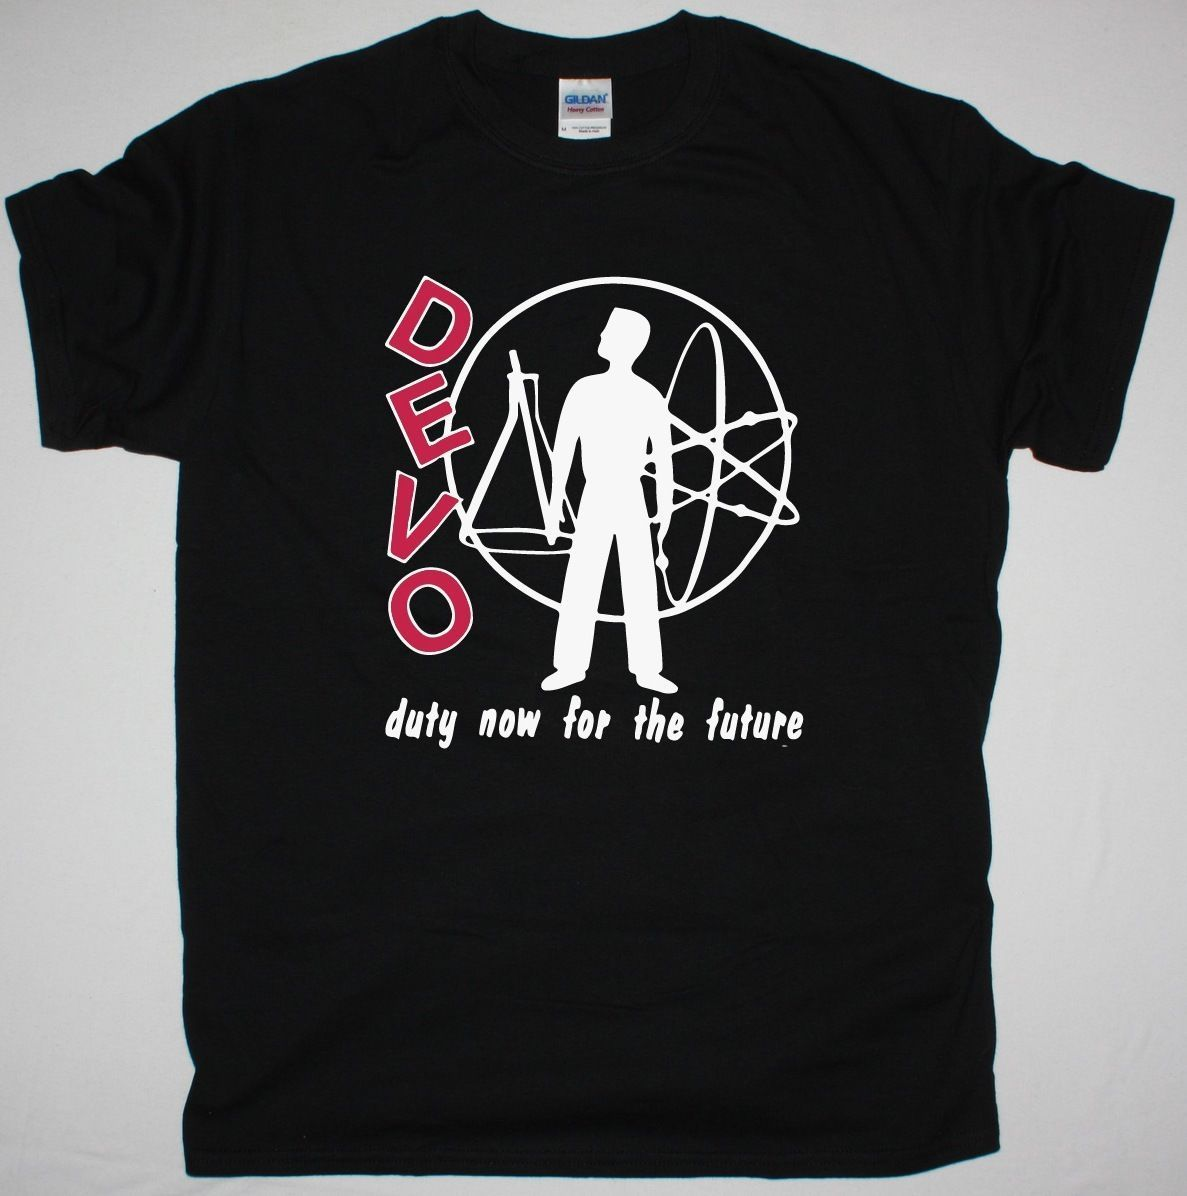 DEVO DUTY NOW FOR THE FUTURE ART POP ELECTRONIC SYNTHPOP NEW BLACK T-SHIRT T shirt Tops Summer Cool Funny T-Shirt